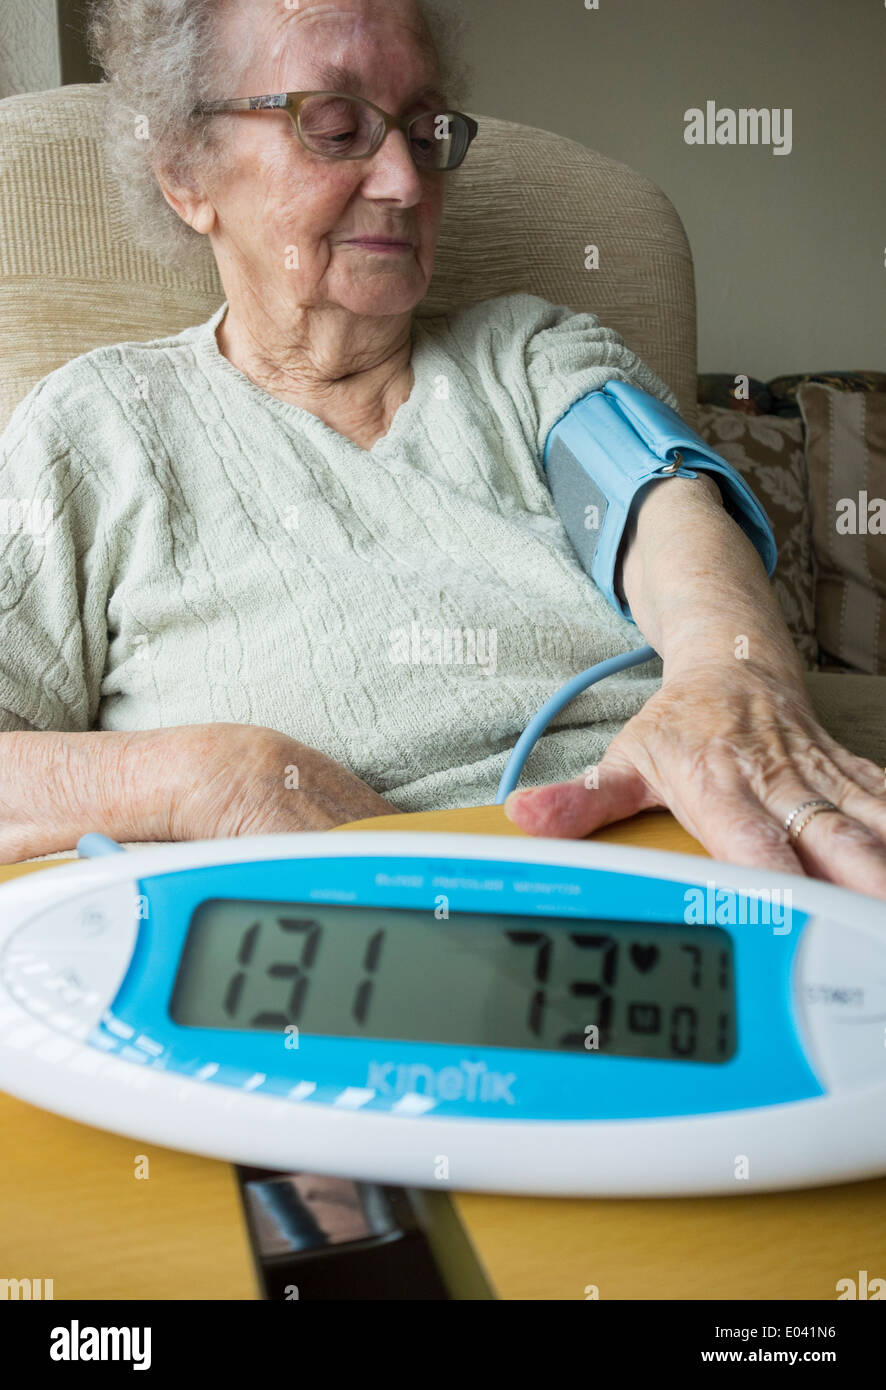 Elderly lady in her nineties having Blood Pressure ckecked at home - Stock Image